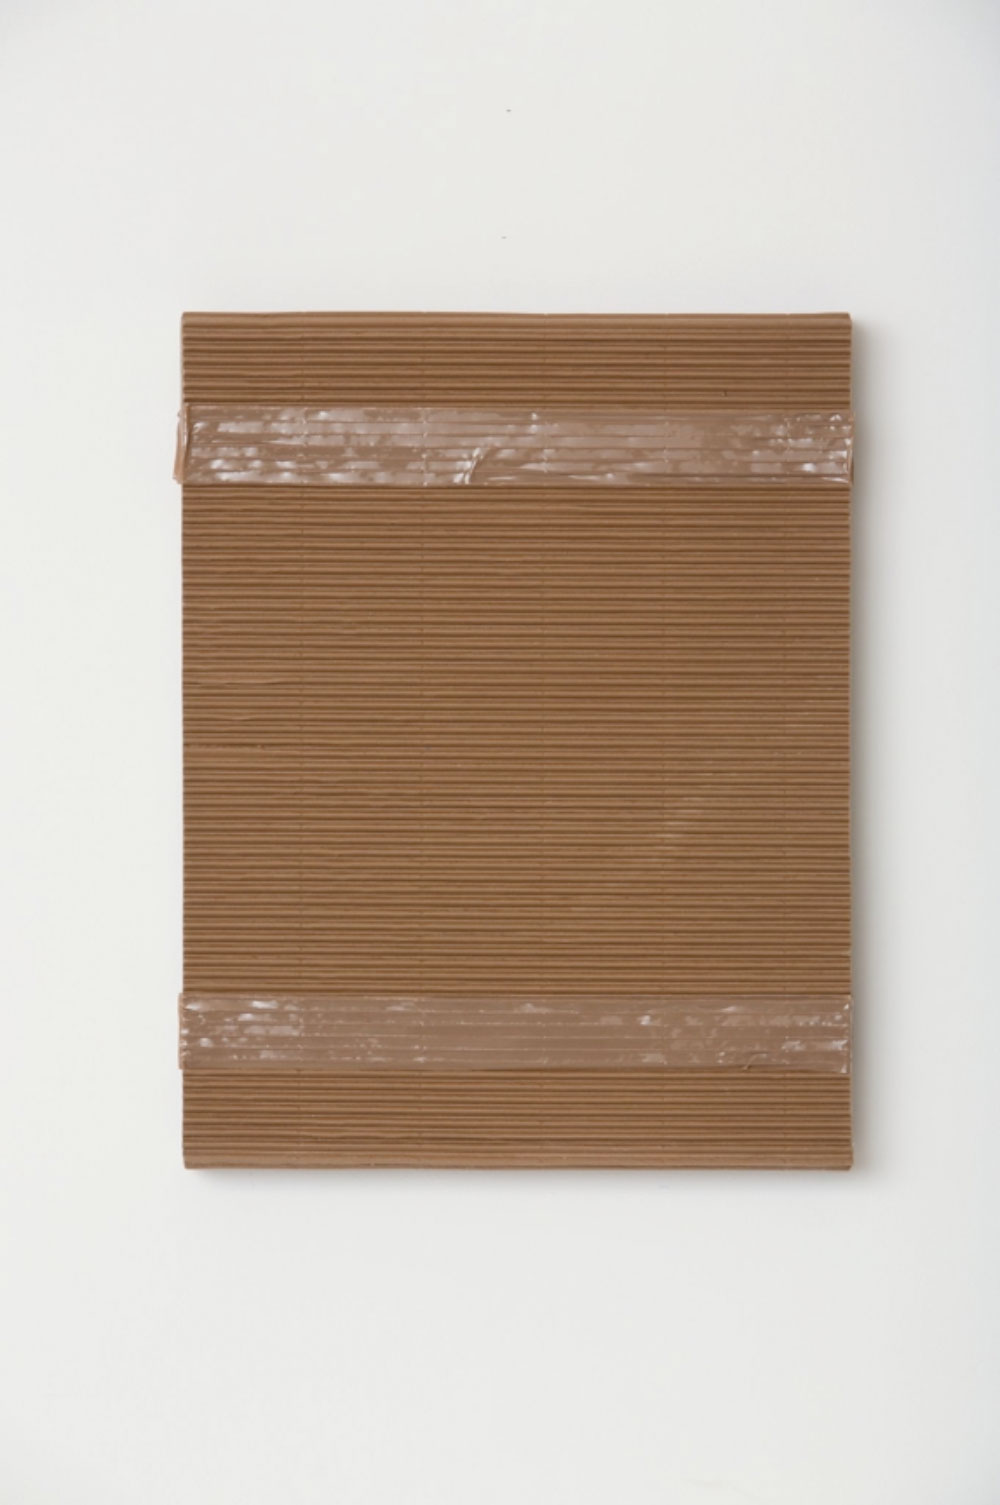 "Monochrome with Corrugated Cardboard and Tan Packing Tape , 2017 Acrylique sur toile de lin  20 x 16 x 1 1/2""."